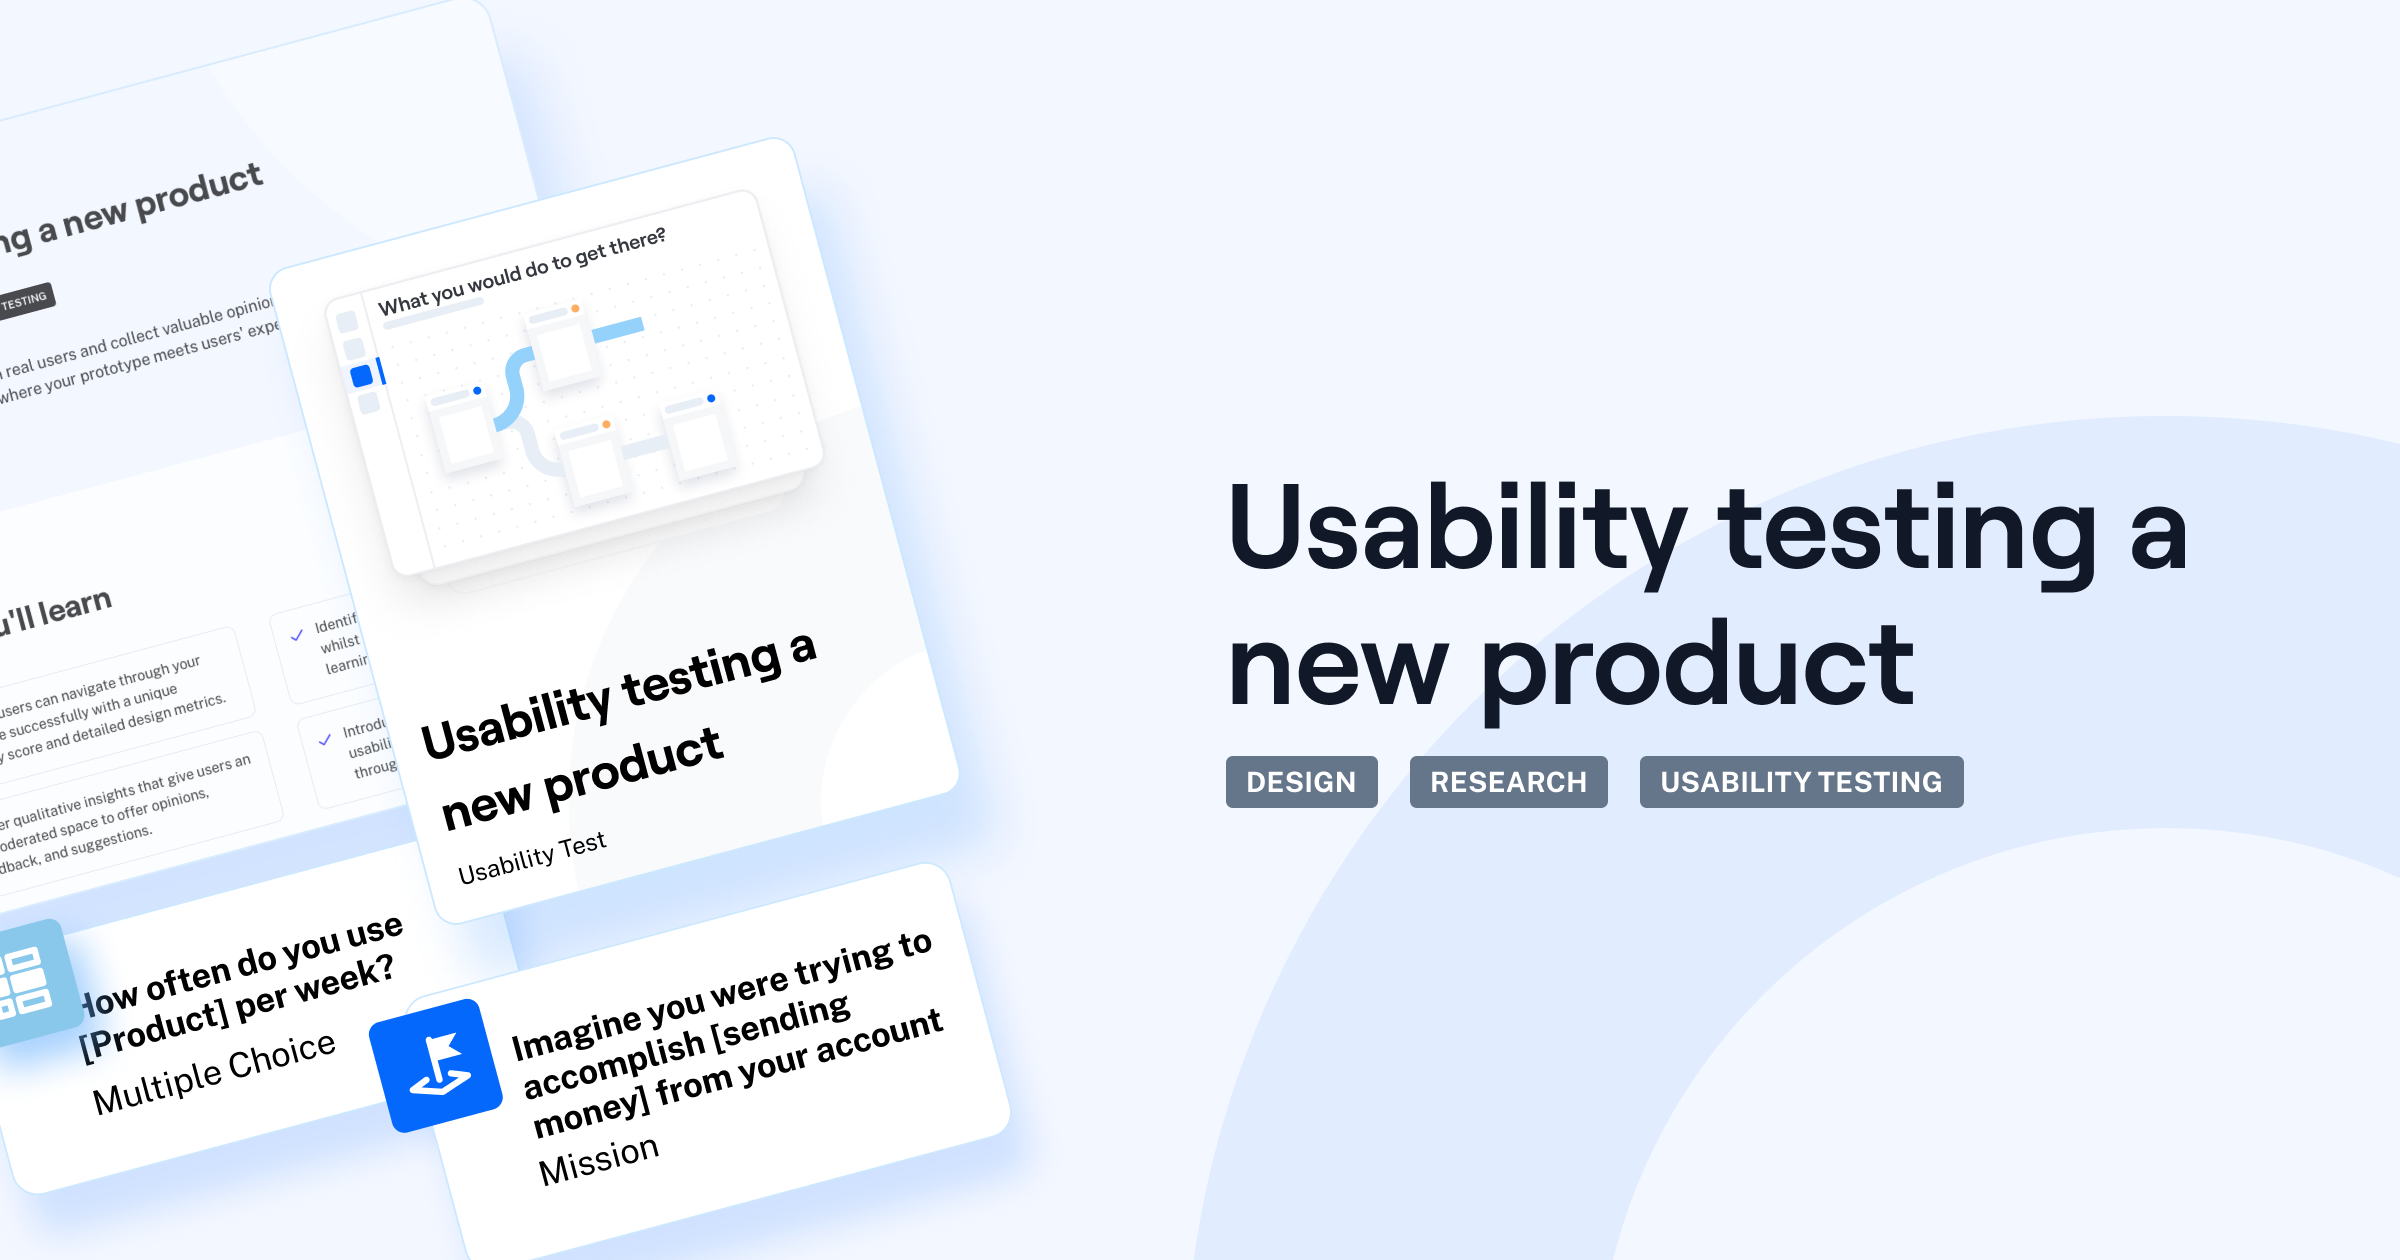 usability-testing-a-new-product-template